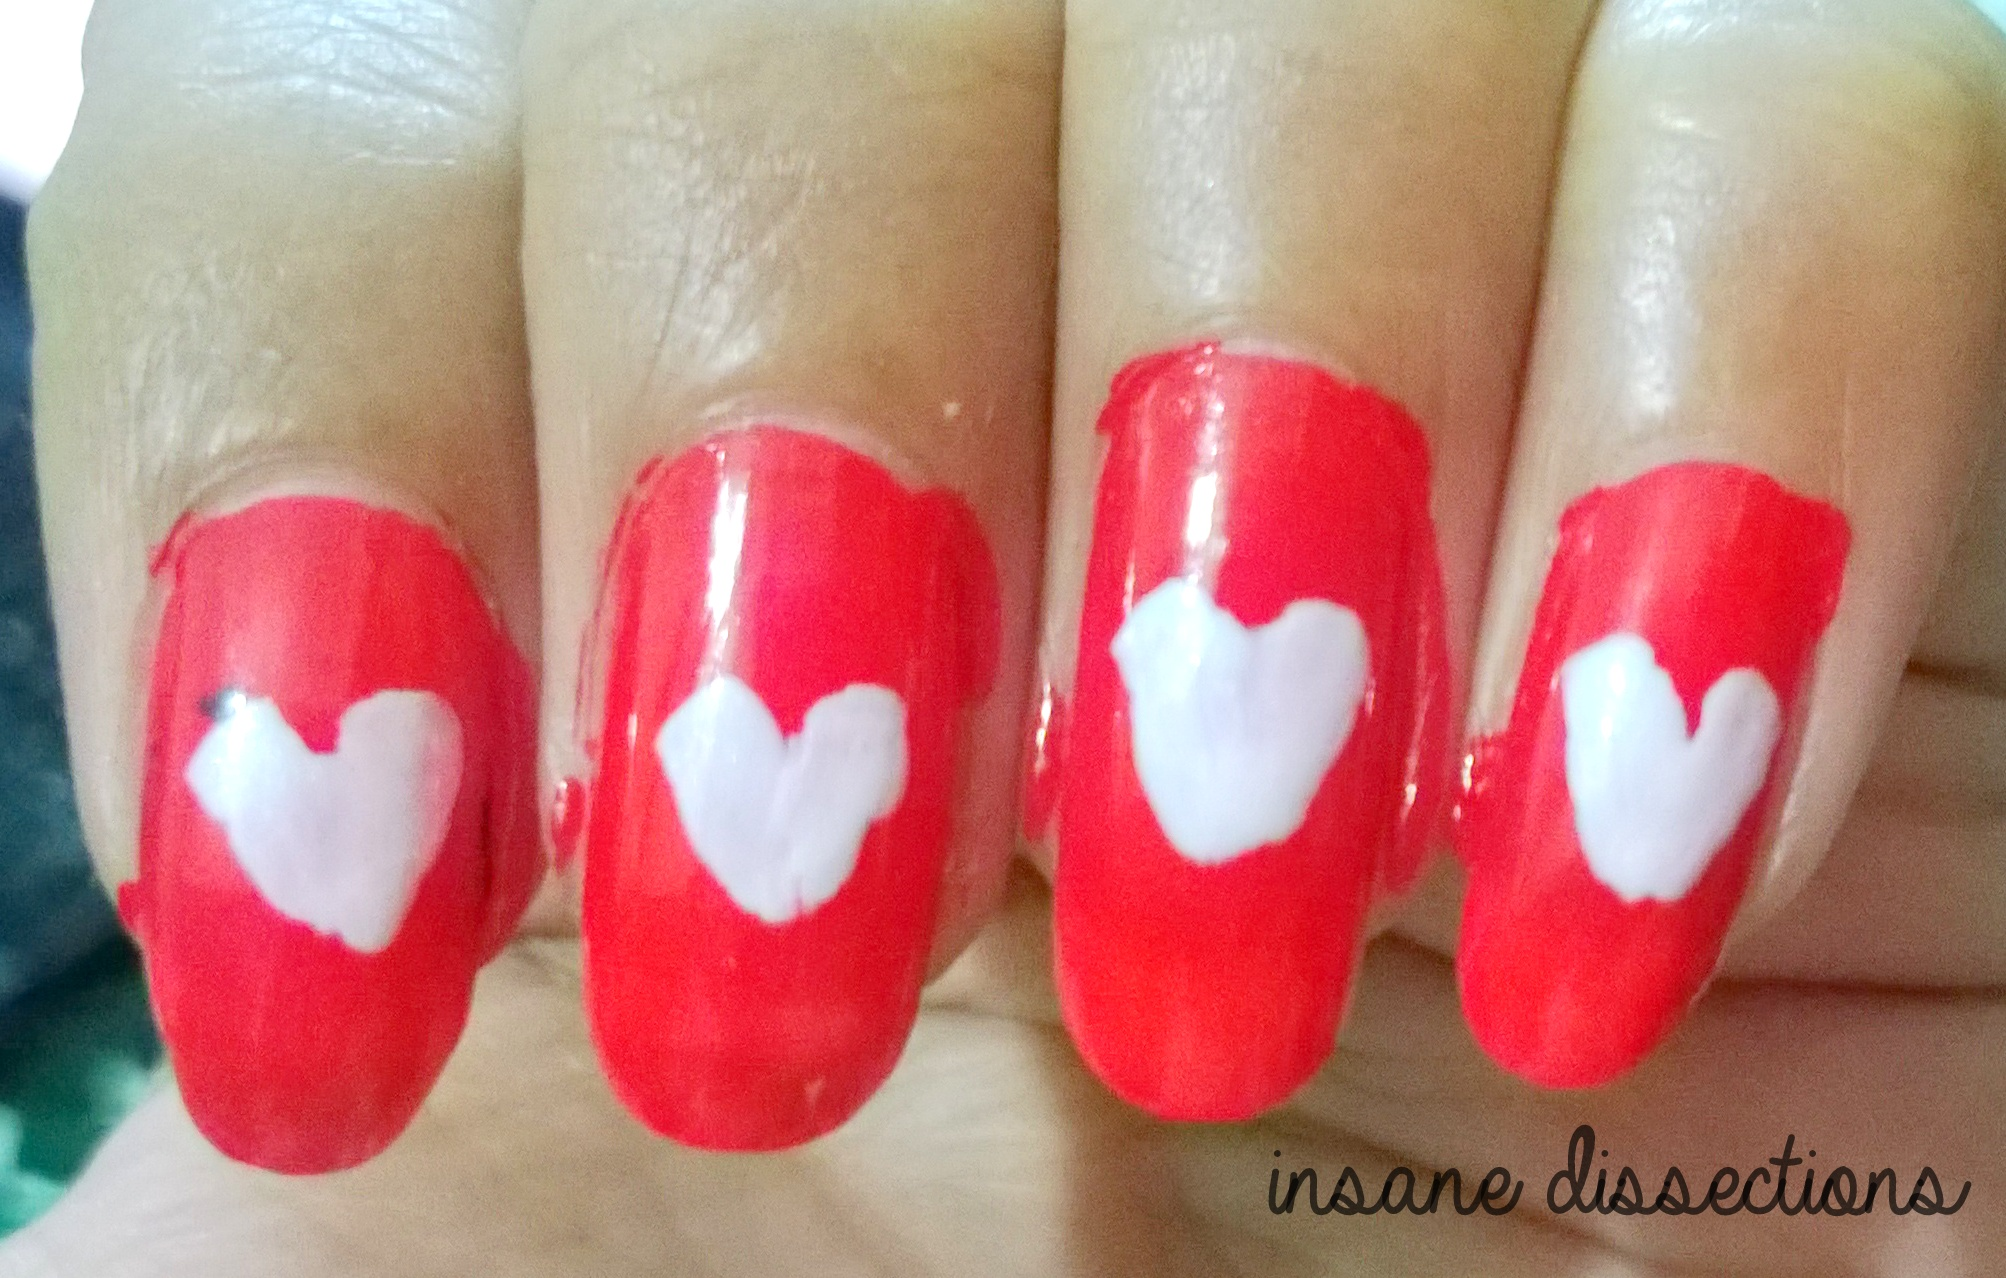 Easy nail art insane dissections using a black nail art pen or a thin brush draw the outlines of hearts using black polish prinsesfo Gallery